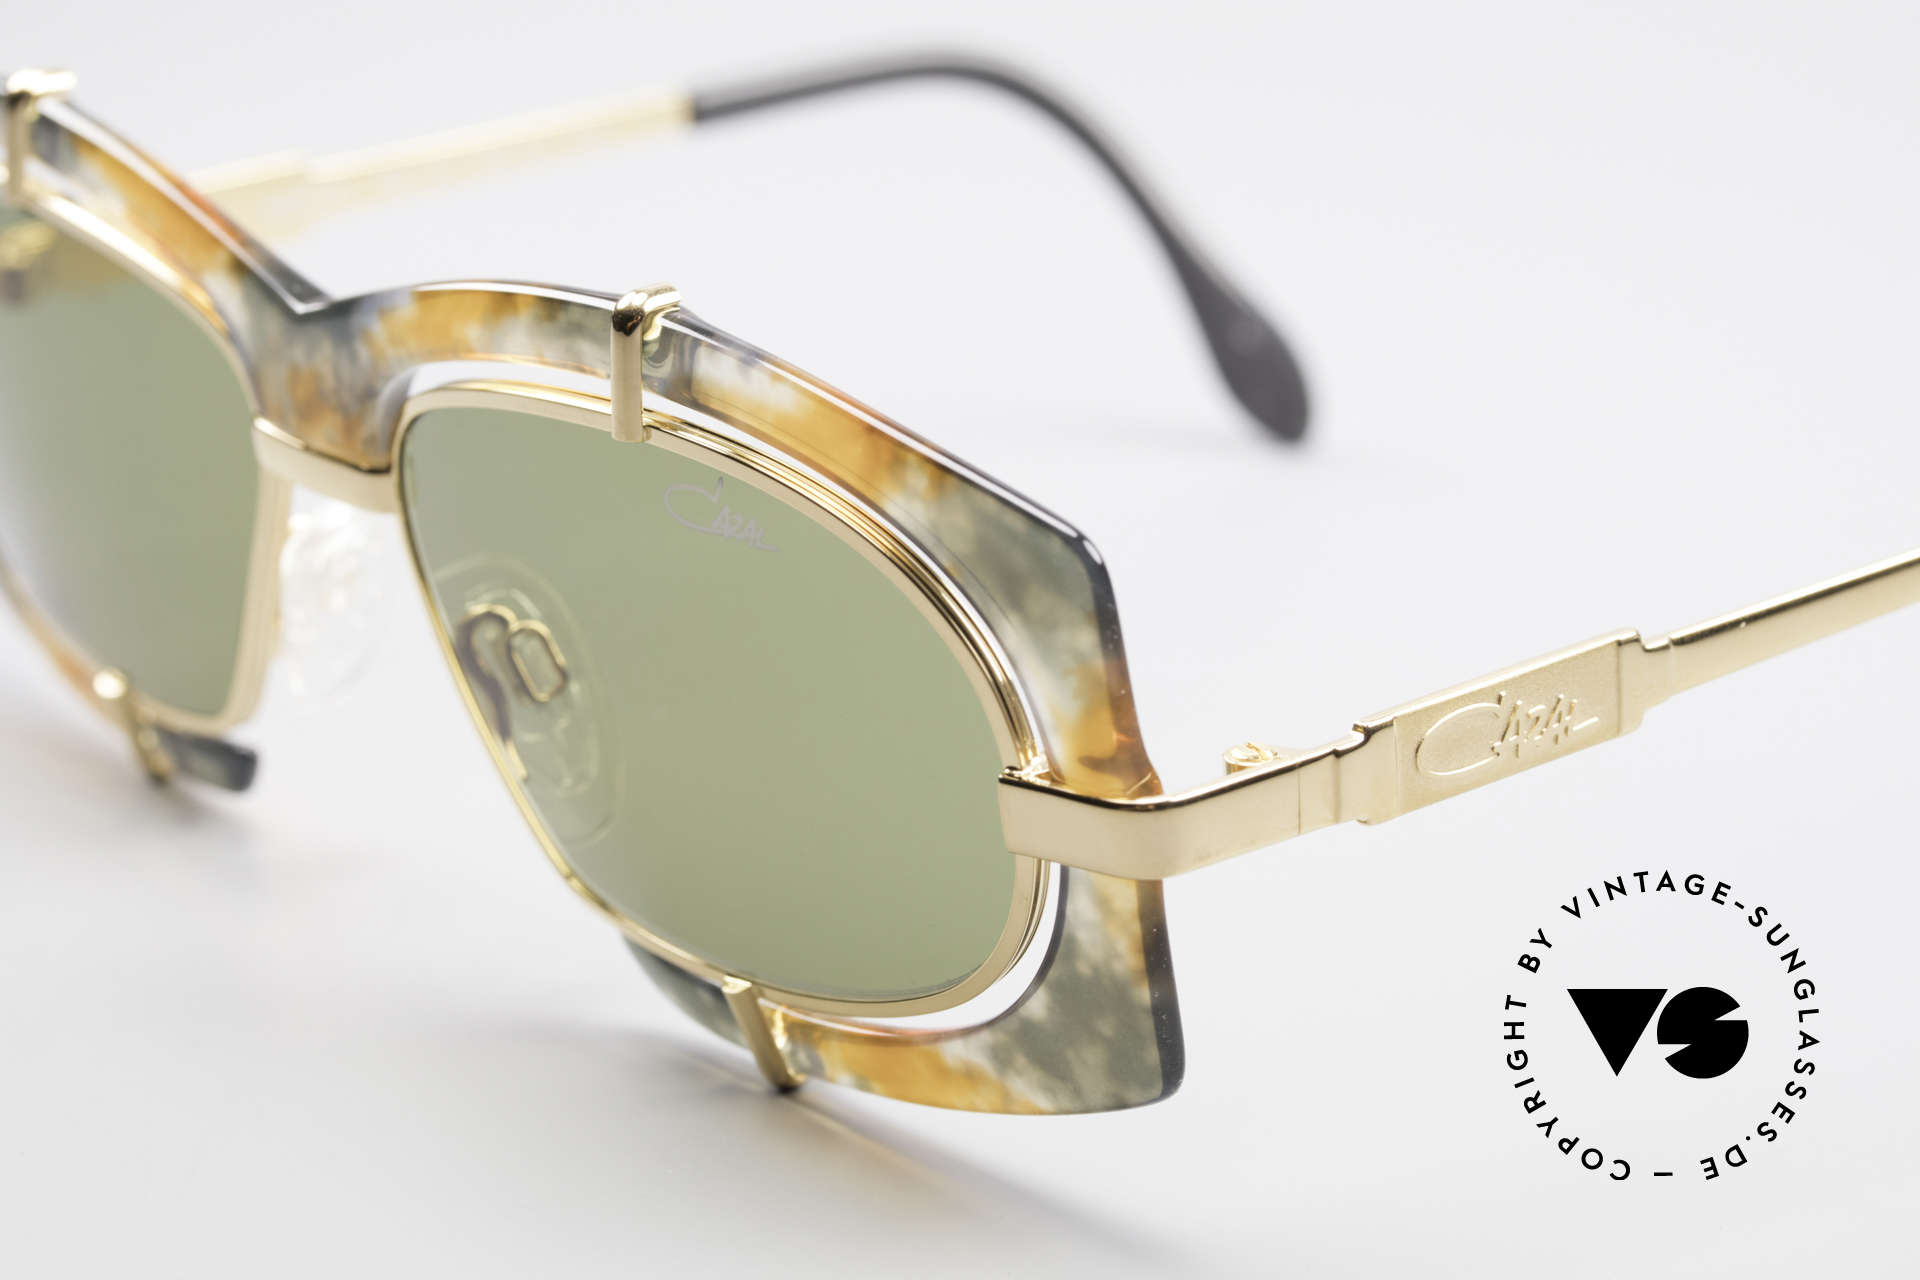 Cazal 872 Extraordinary 90's Shades, thus, a sought-after HIP-HOP sunglasses, worldwide, Made for Men and Women